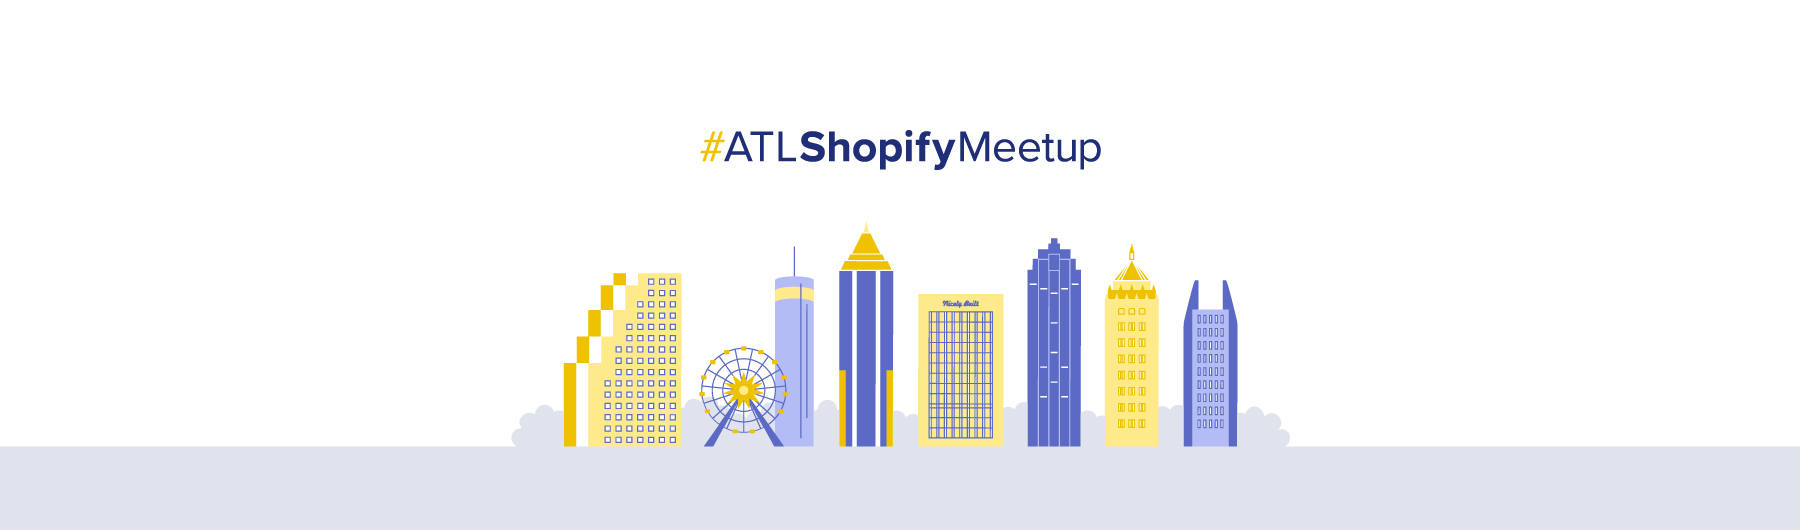 September 18th Shopify Meetup